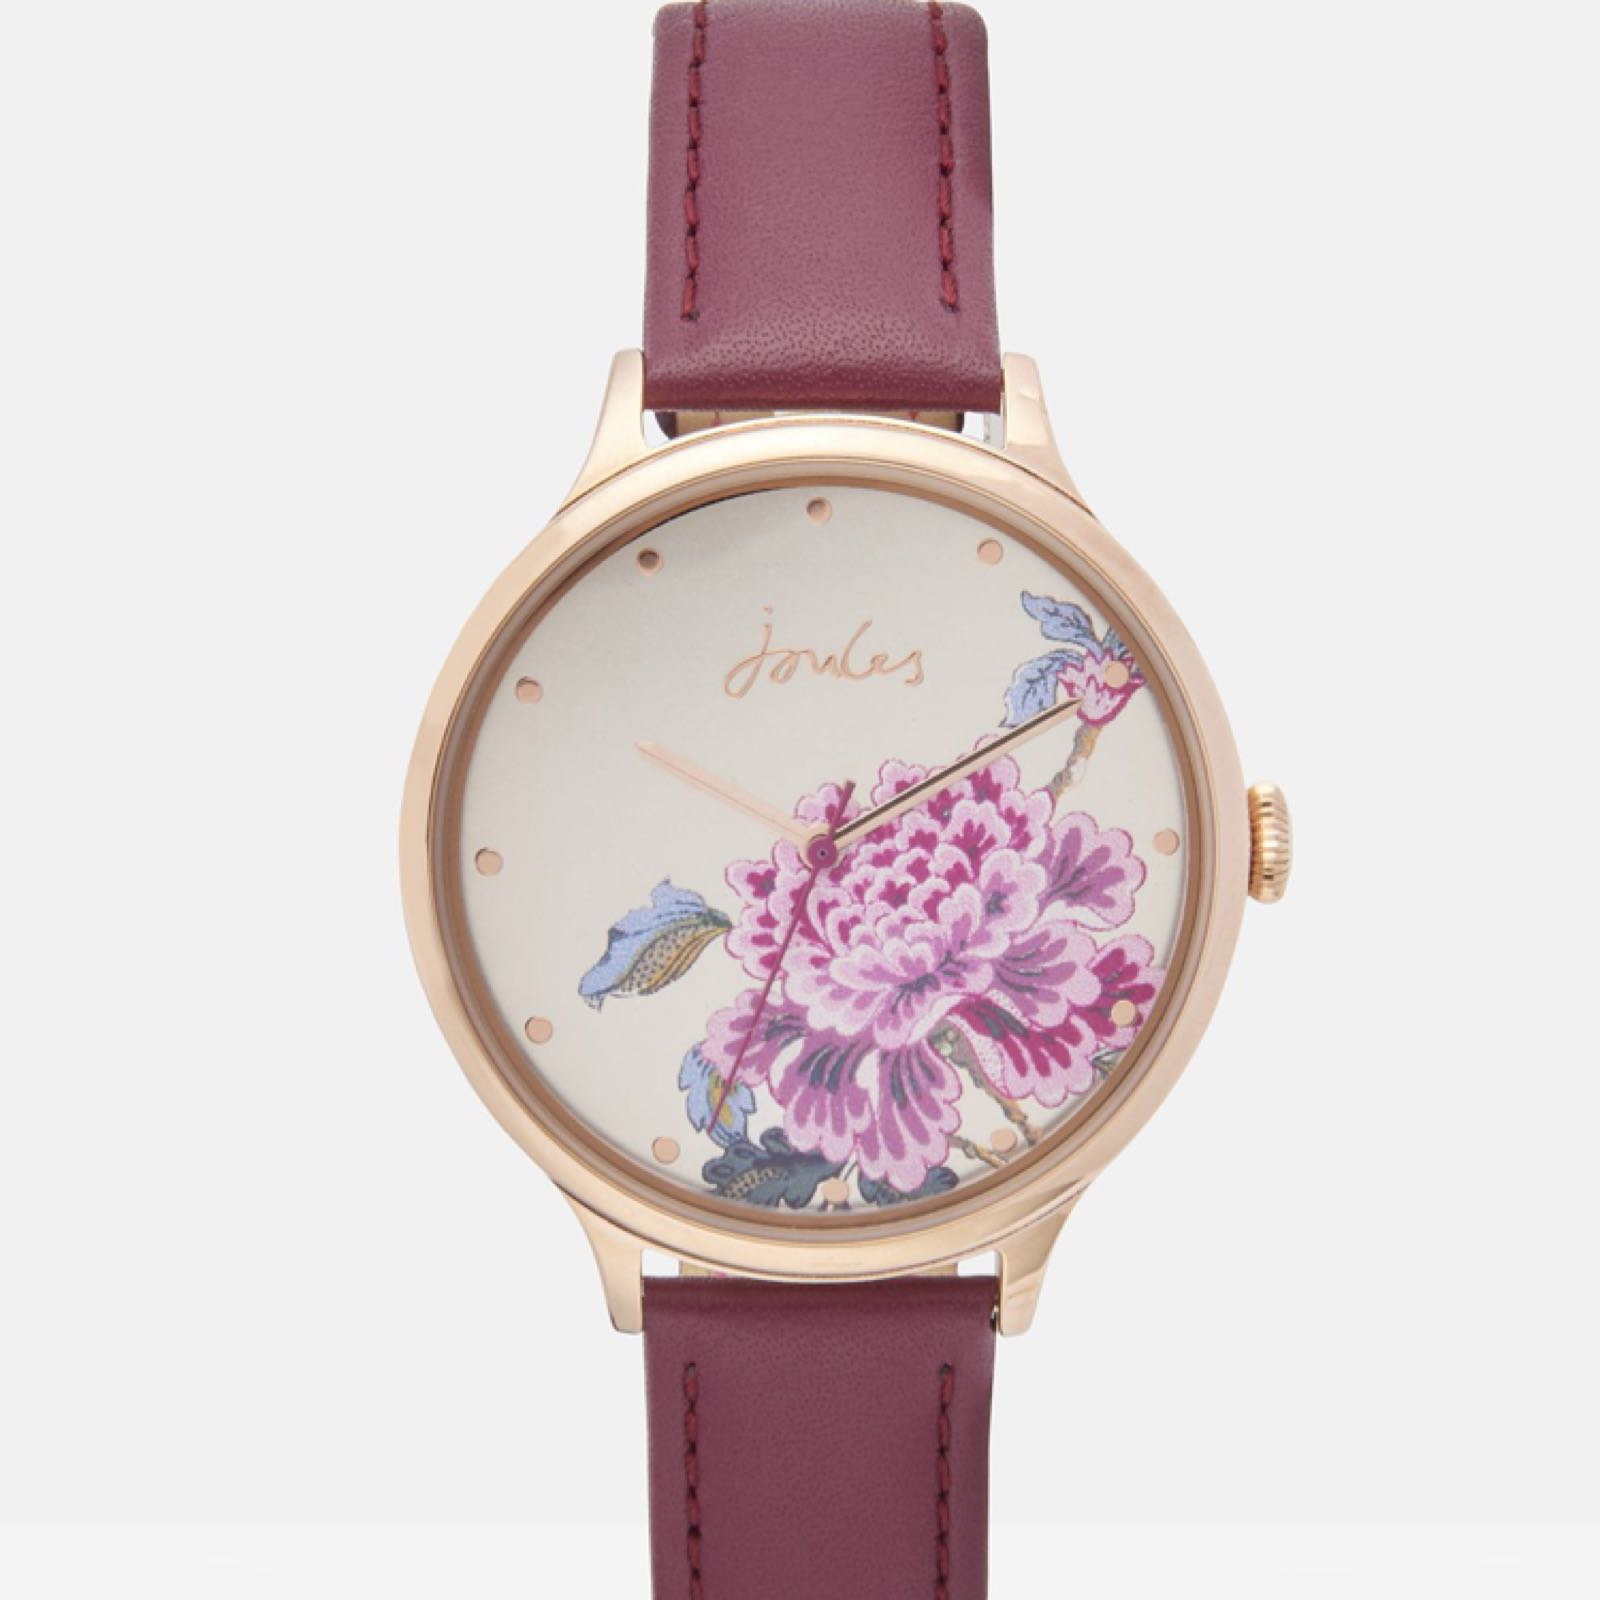 Joules Bloom ladies leather strap watch